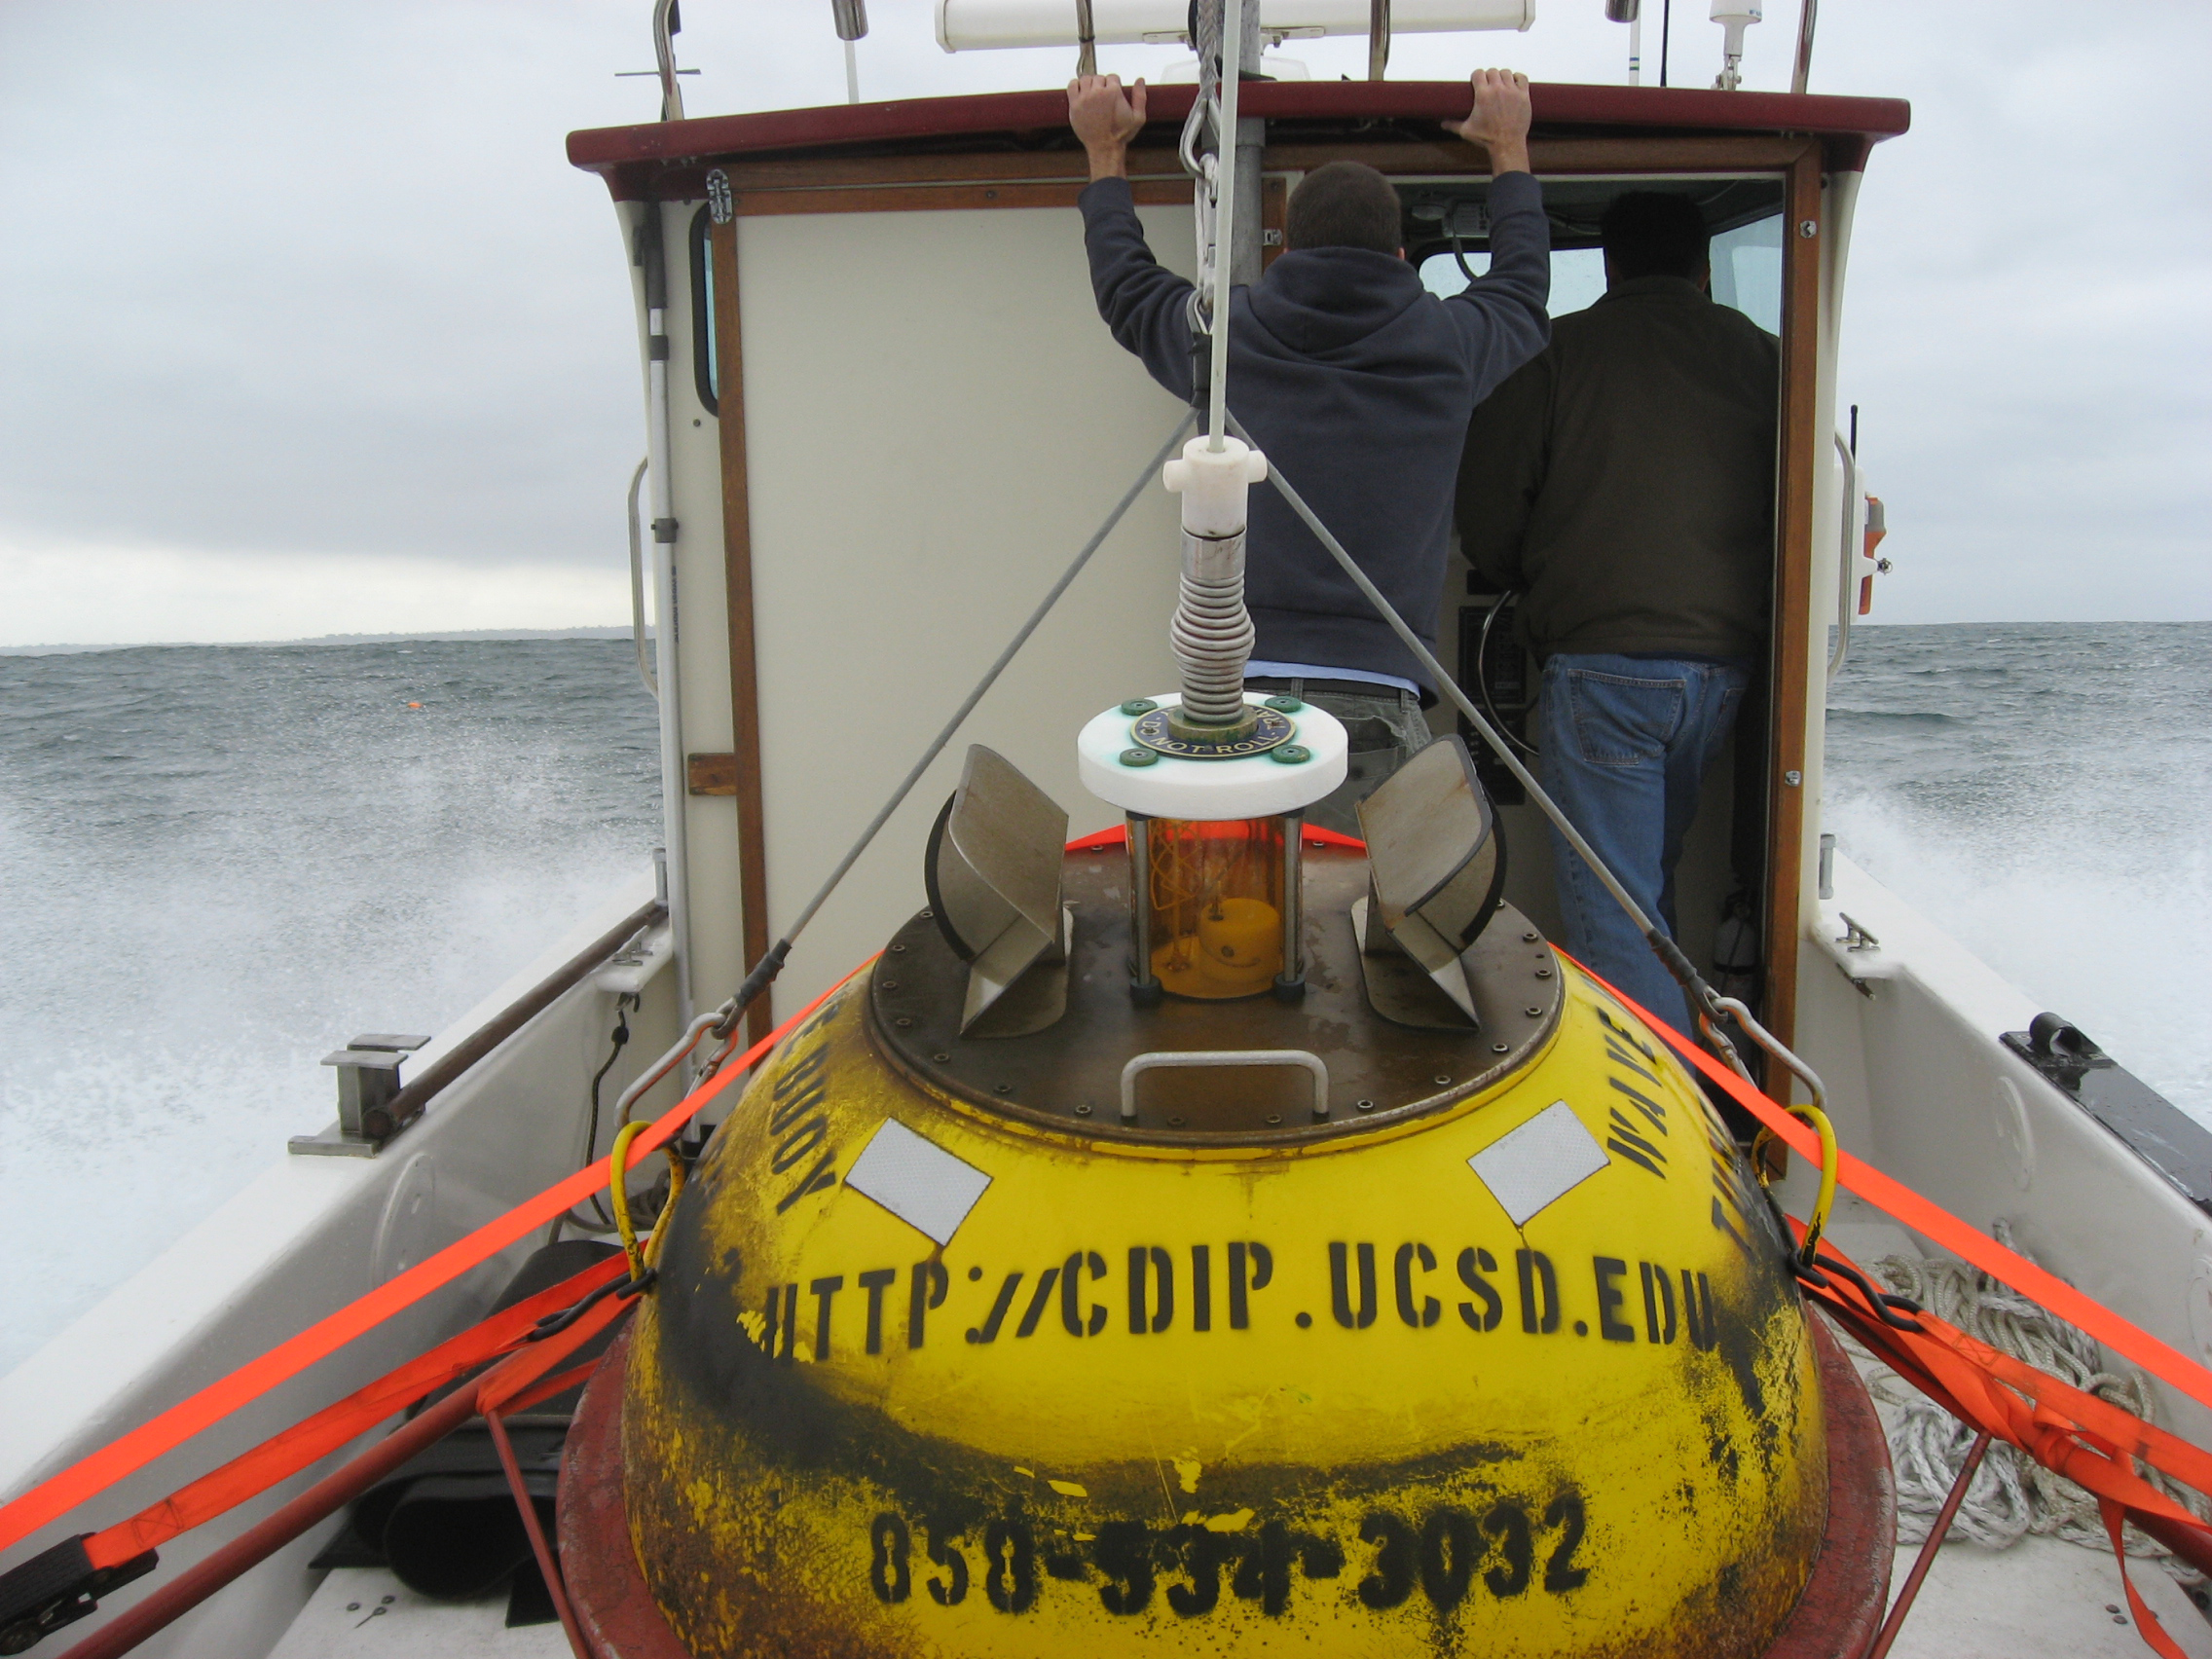 Rough seas and swell on return from buoy recovery